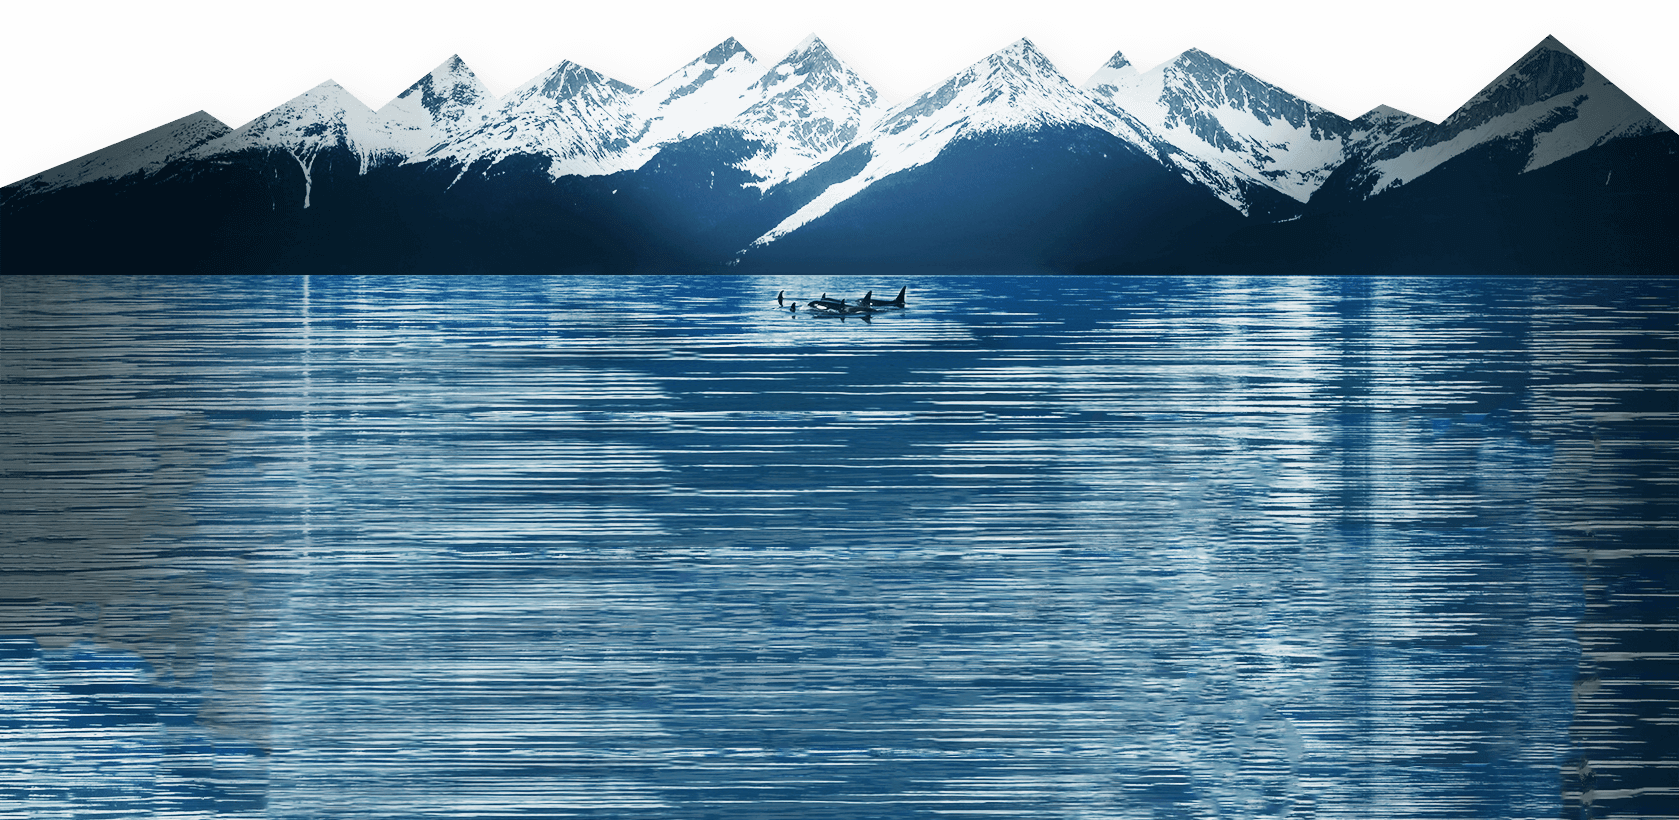 Lake water png. Orca bay seafoods mountain